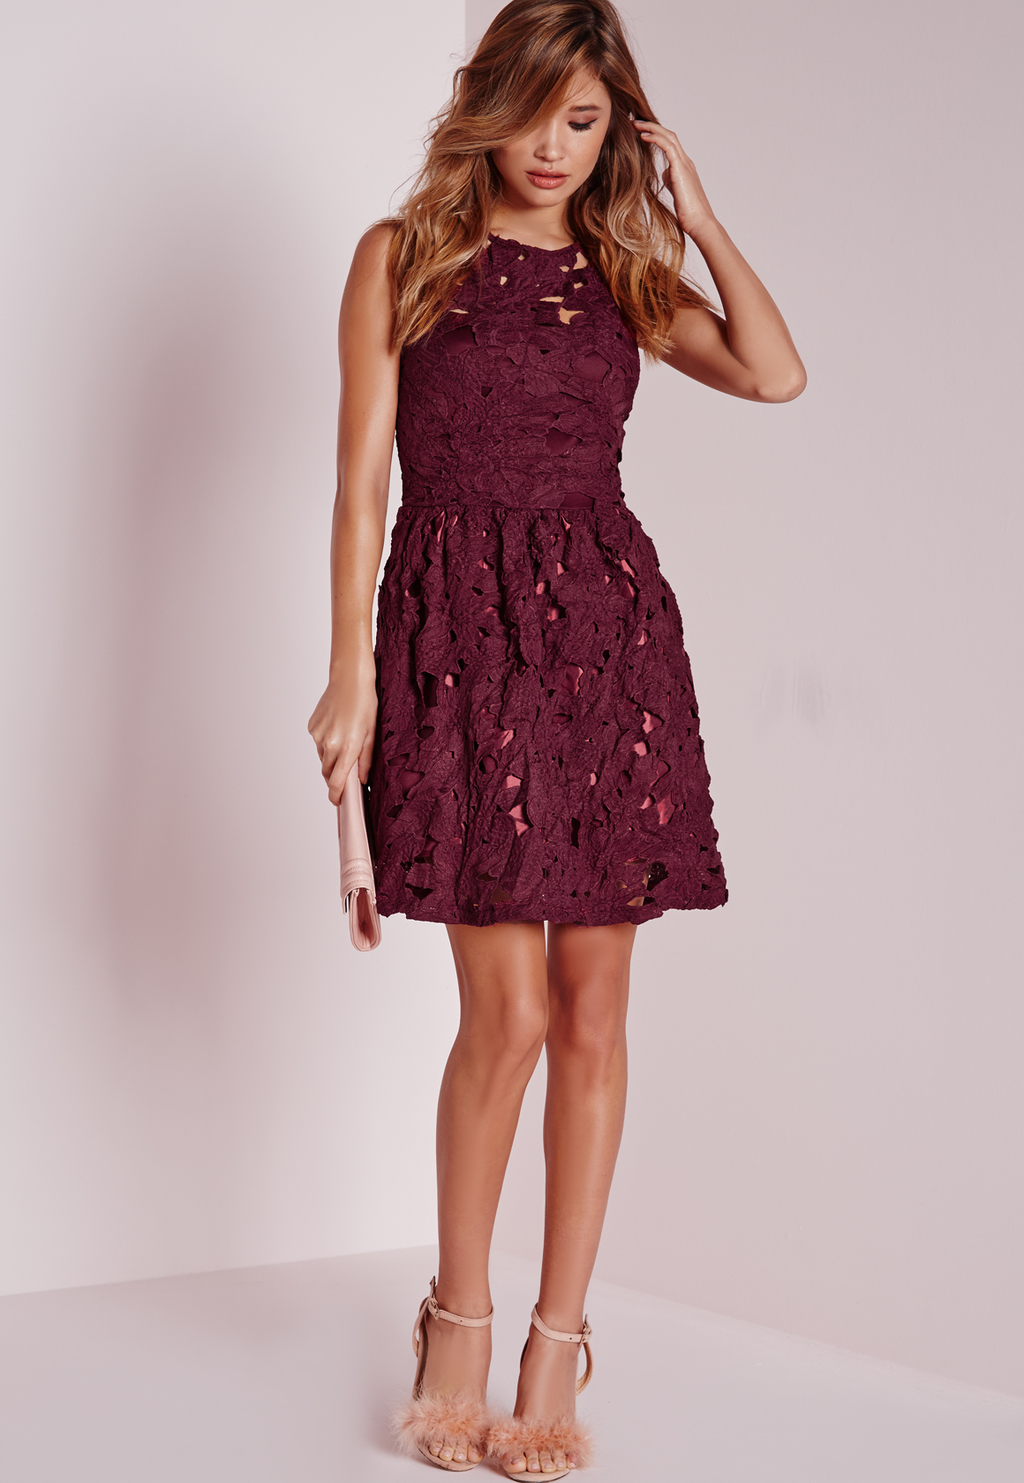 Sleeveless Lace Skater Dress Plum, Purple - length: mid thigh; neckline: round neck; sleeve style: sleeveless; predominant colour: purple; occasions: evening, occasion; fit: fitted at waist & bust; style: fit & flare; fibres: polyester/polyamide - stretch; sleeve length: sleeveless; texture group: lace; pattern type: fabric; pattern size: light/subtle; pattern: patterned/print; season: a/w 2015; wardrobe: event